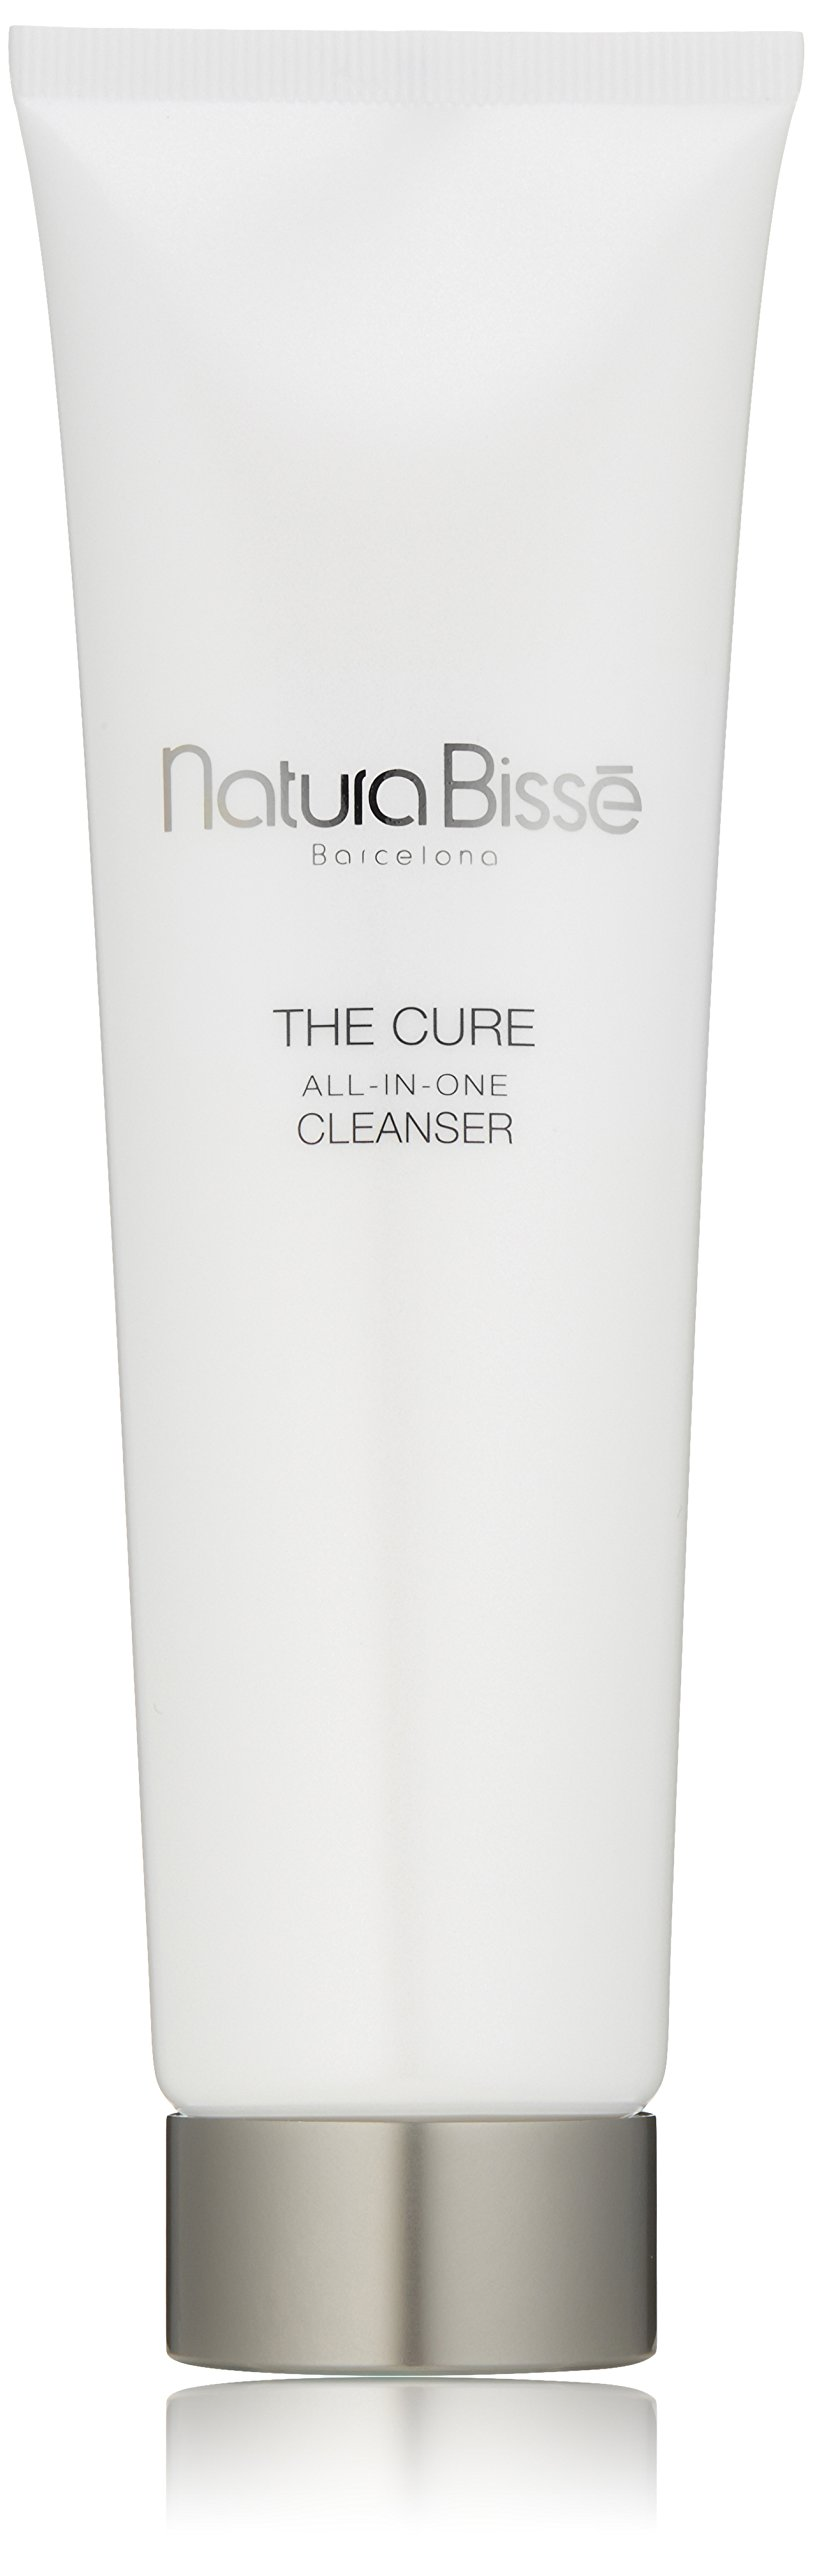 Natura Bisse The Cure All in One Cleanser, 5.3 Oz